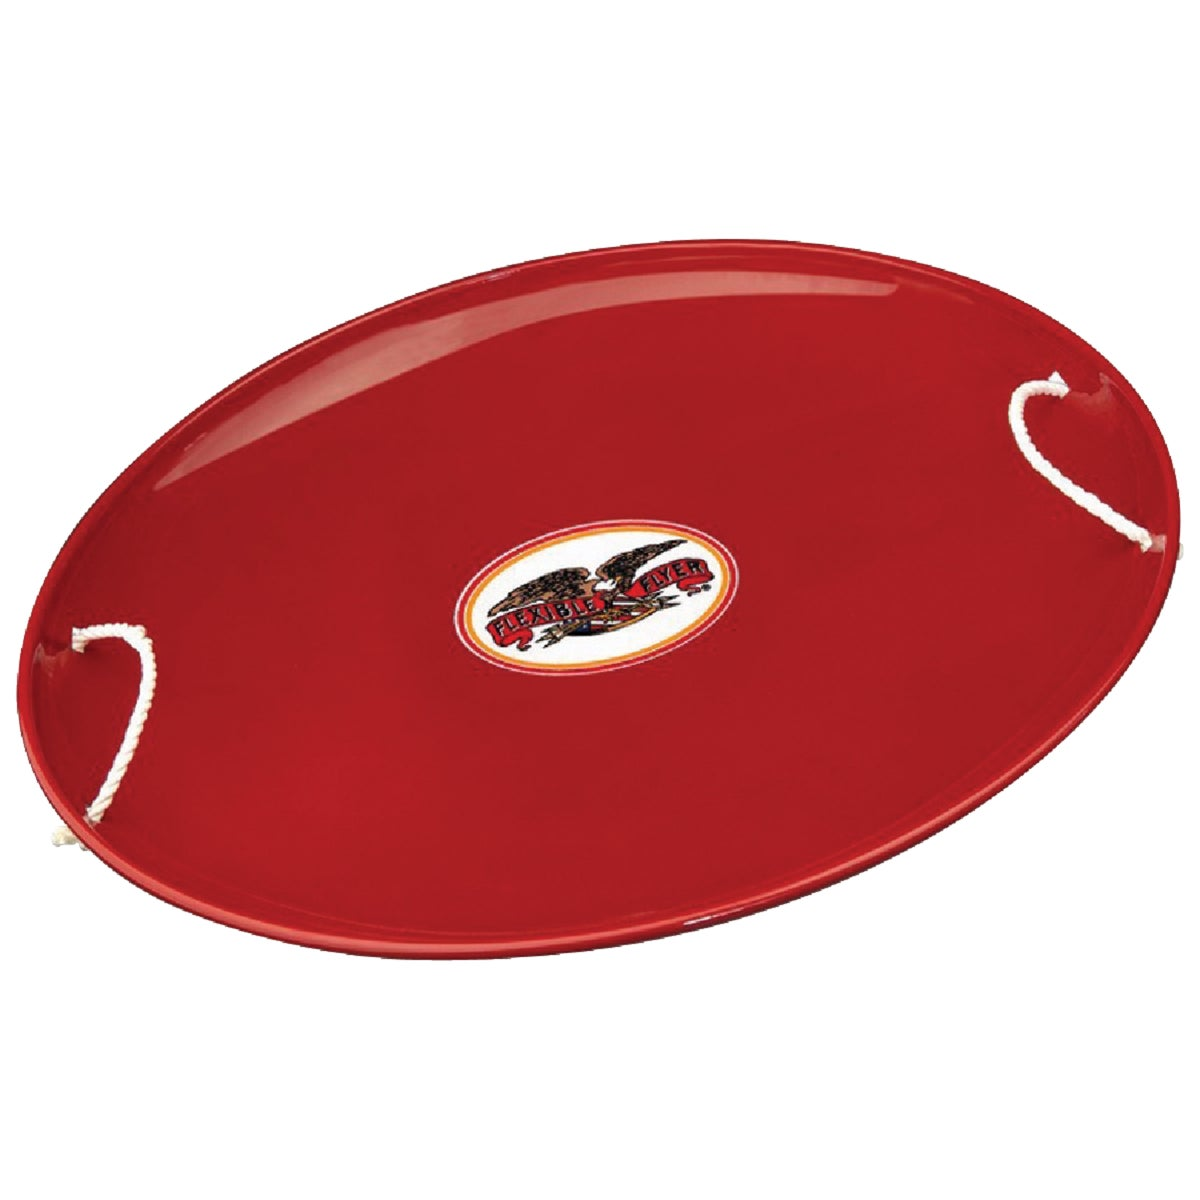 "RED 26"" STEEL SAUCER"